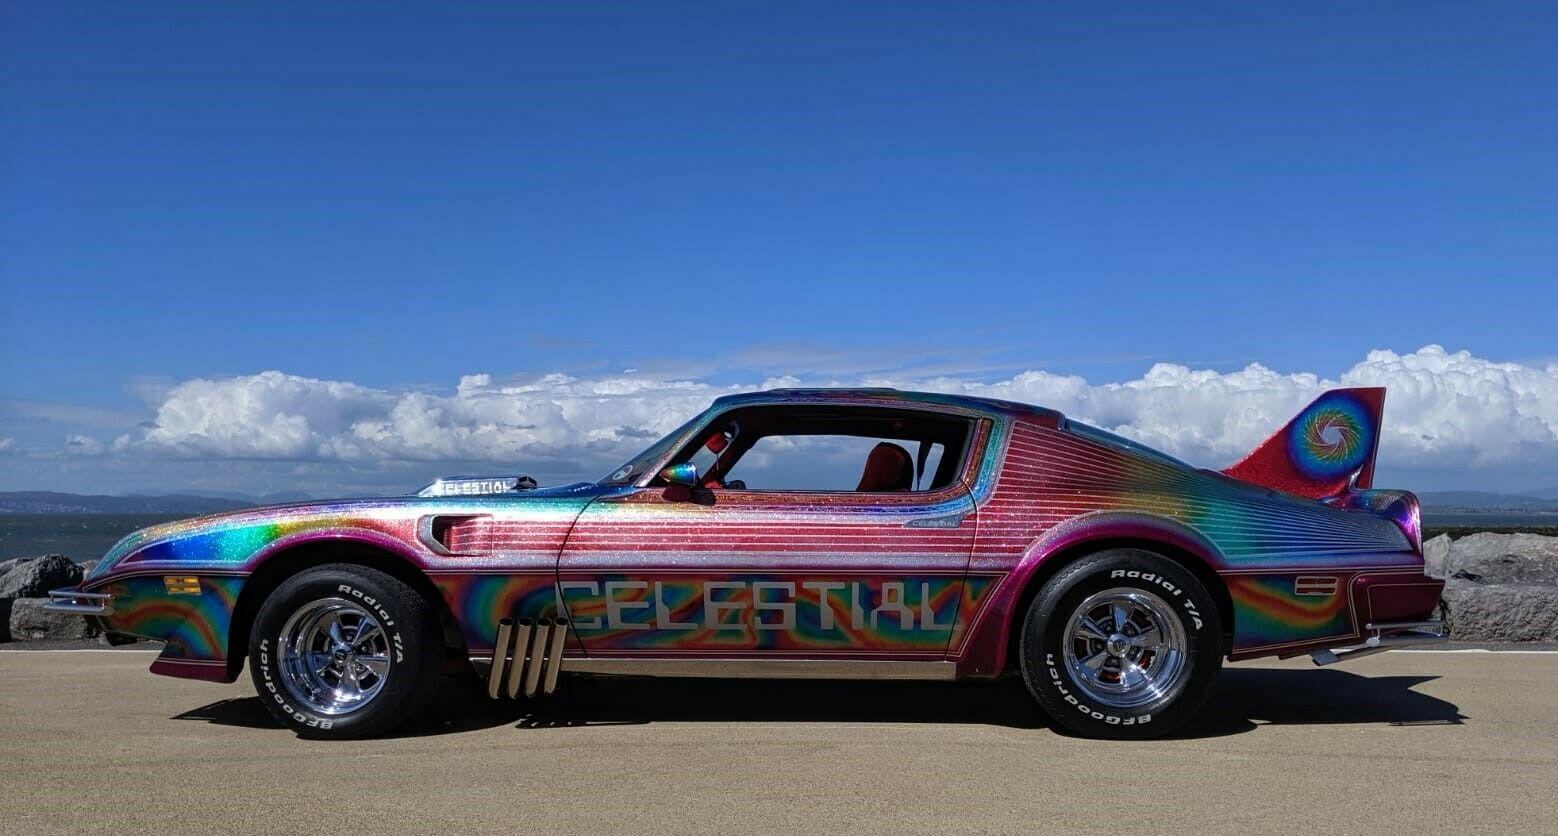 Out Of This World: This 1973 Trans Am Is A Completely Bonkers Take On A 70's Street Machine!